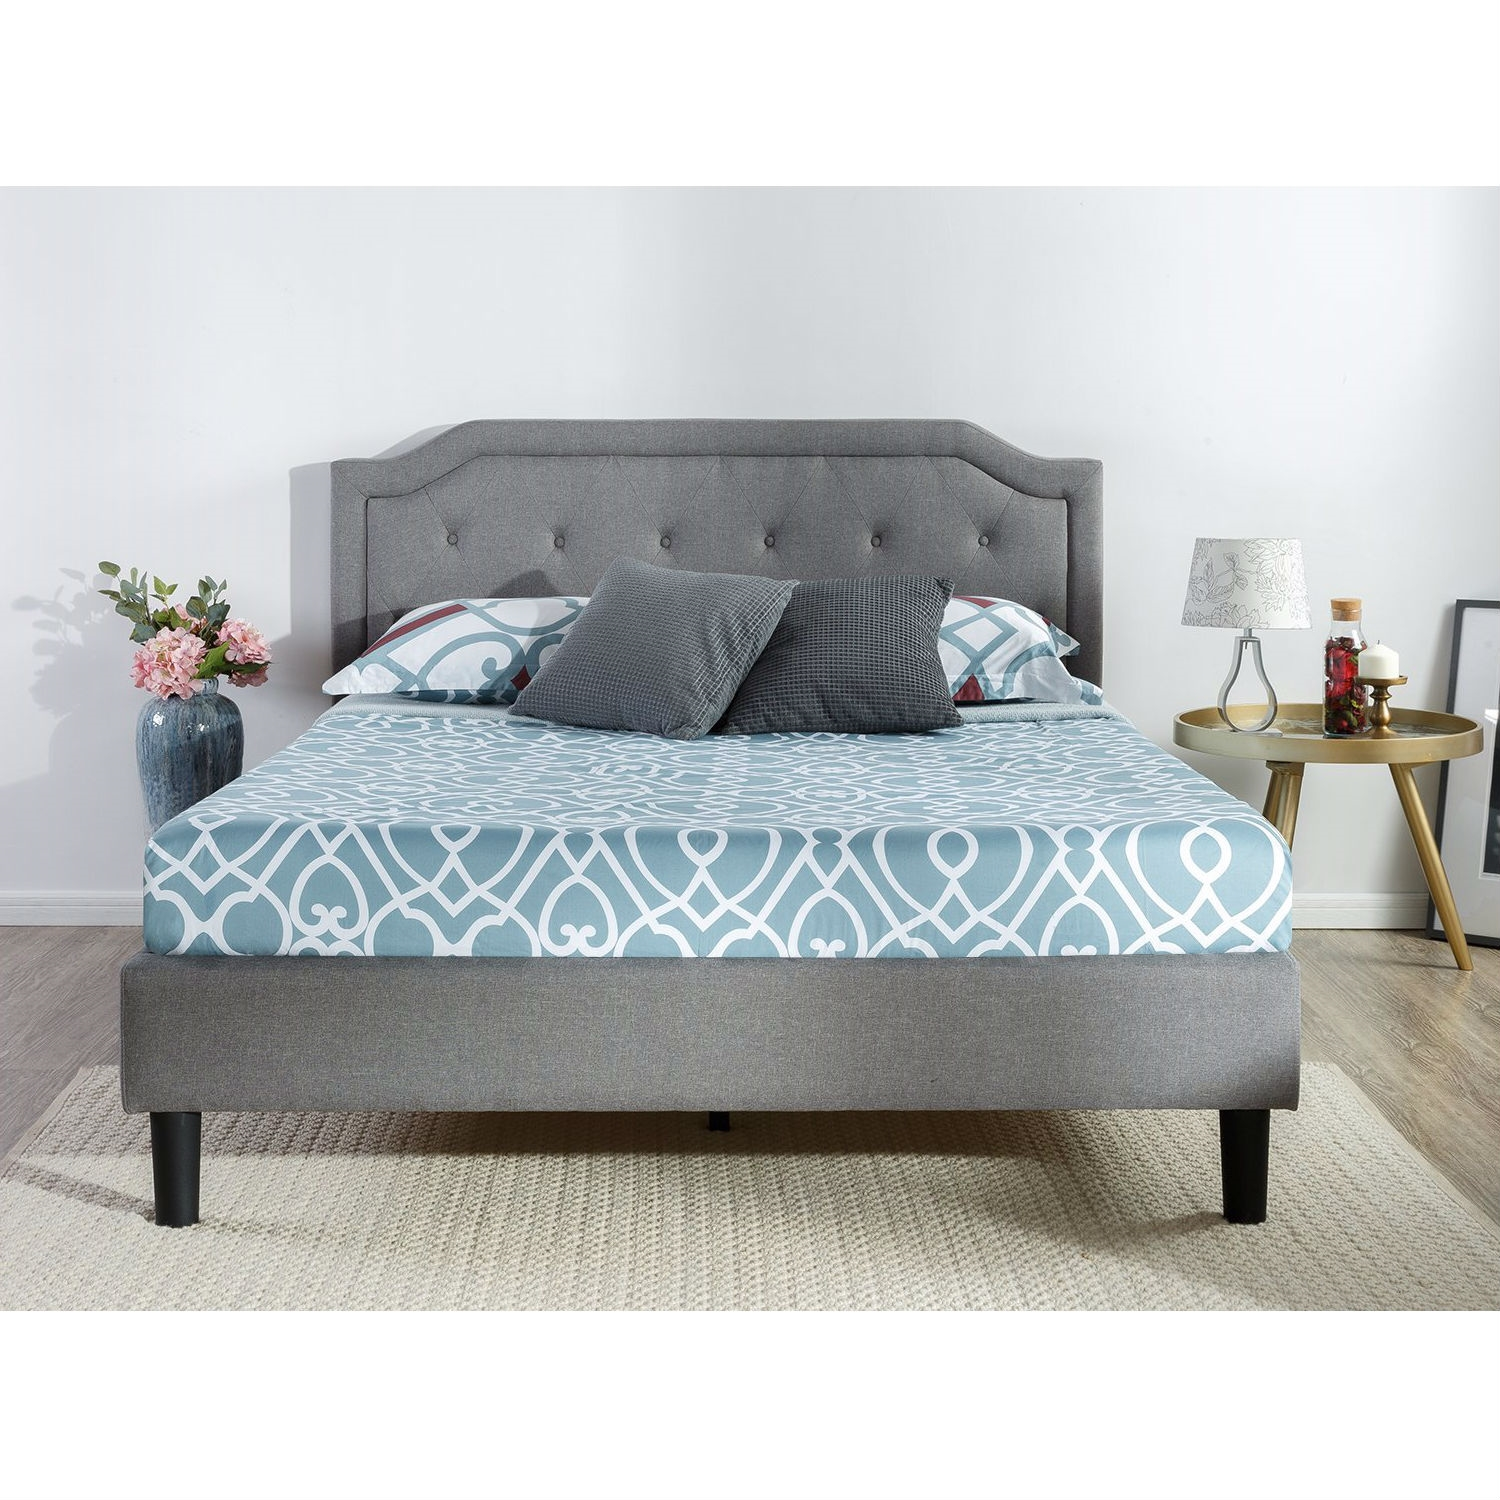 King Size Grey Upholstered Platform Bed With Classic Button Tufted